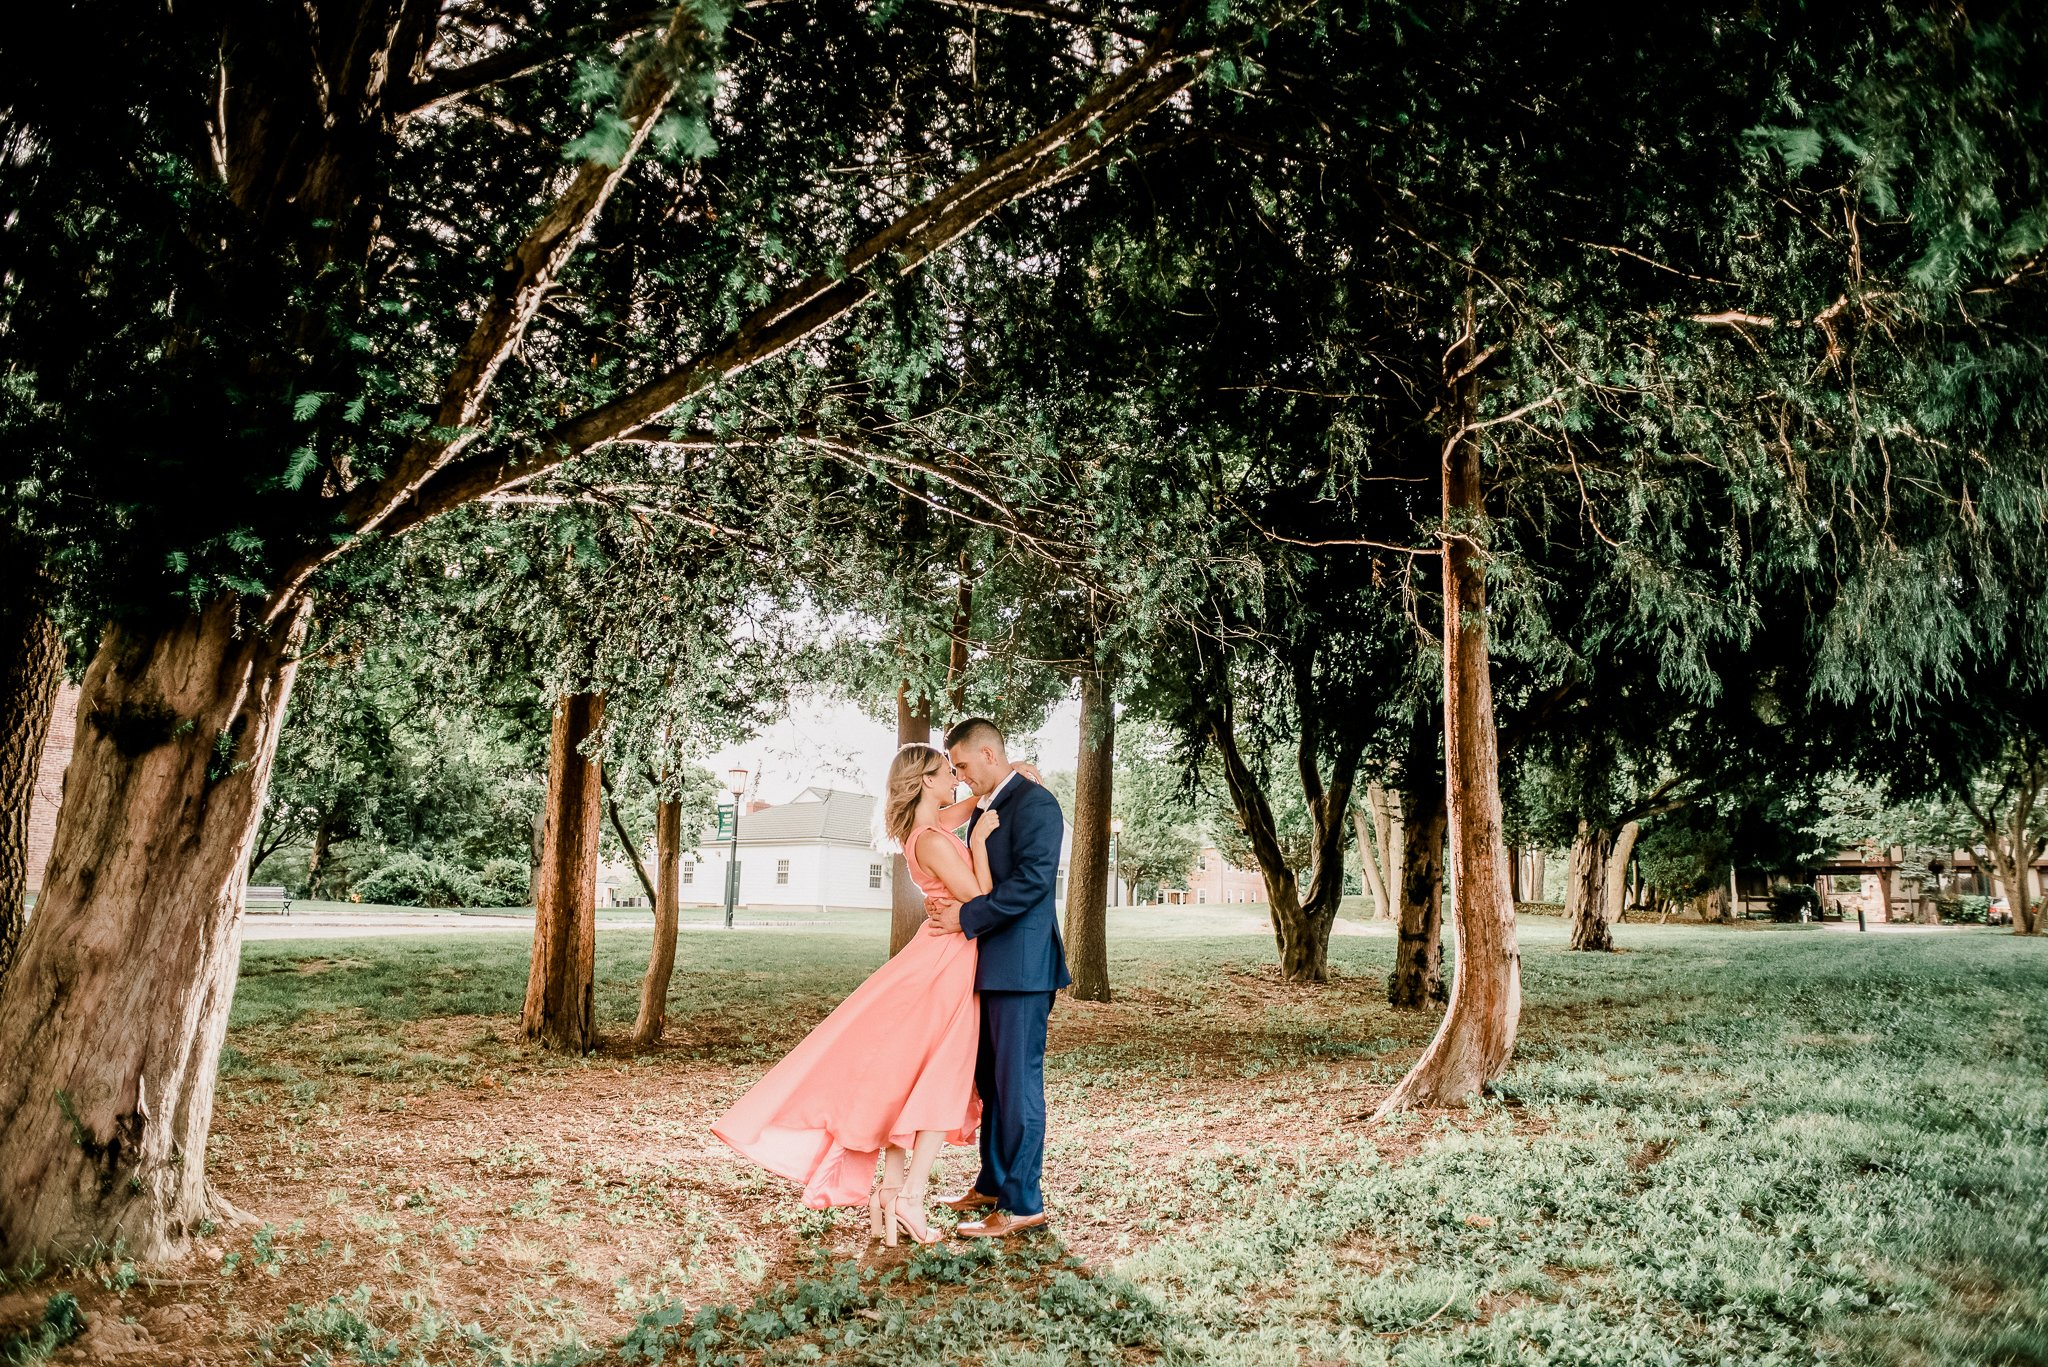 The Top 5 FREE Engagement Shoot Locations